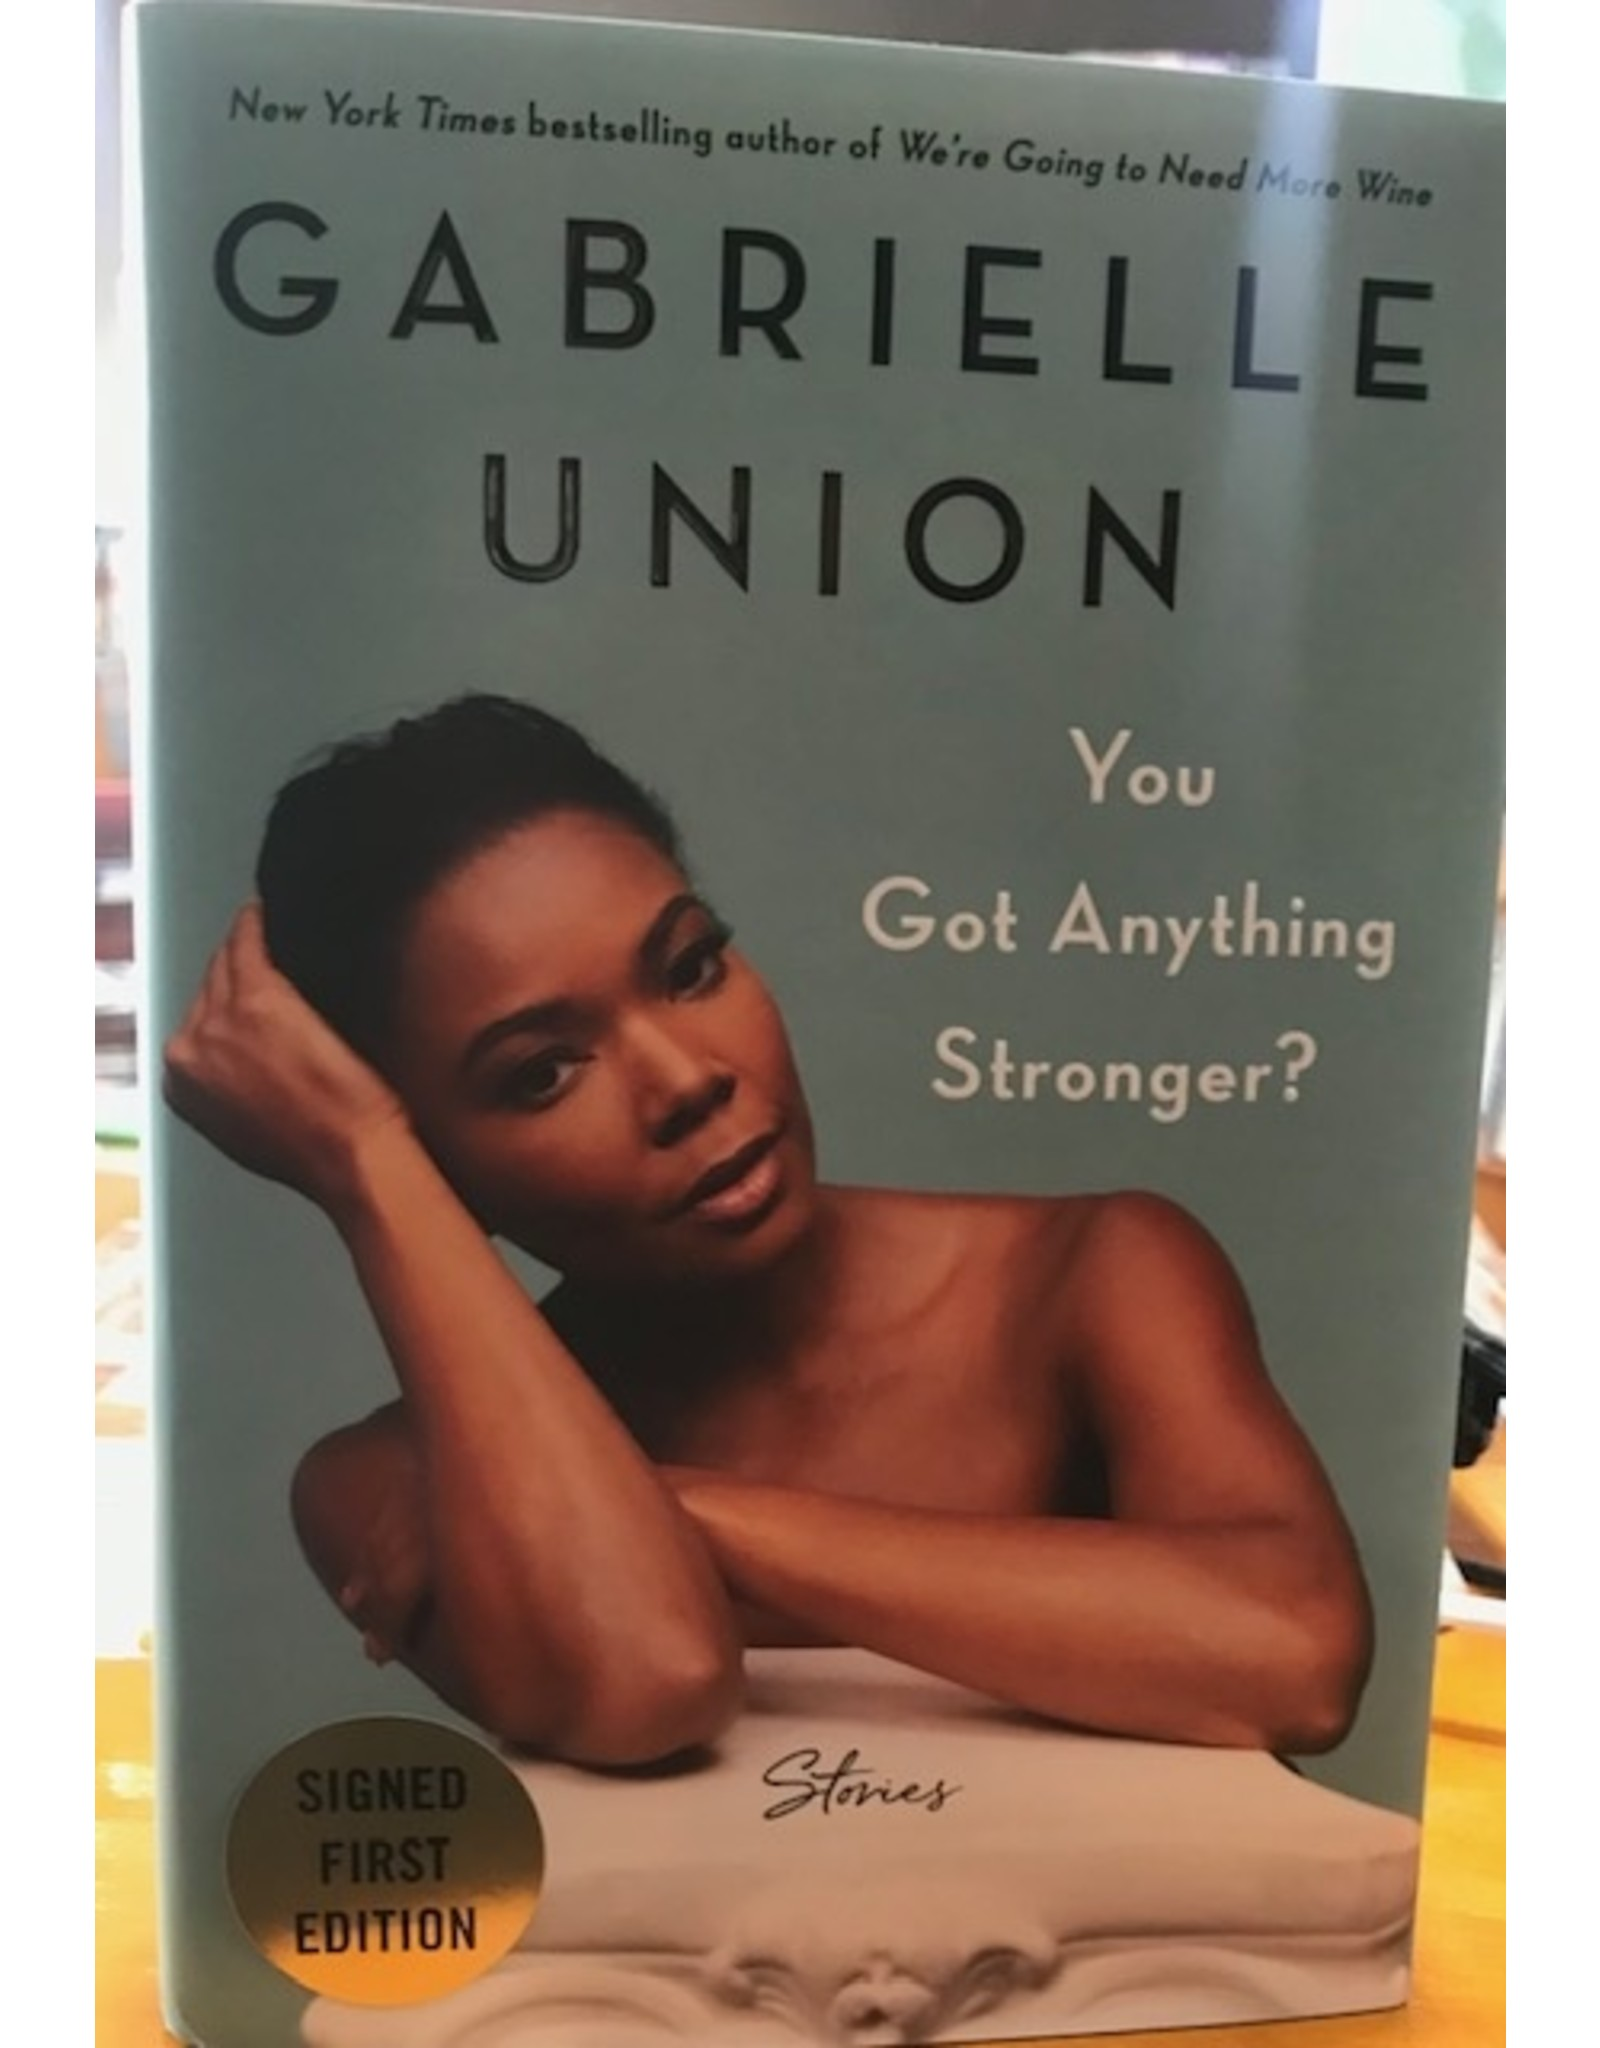 Books You Got Anything Stronger? Stories by Gabrielle Union (Signed First Editions)